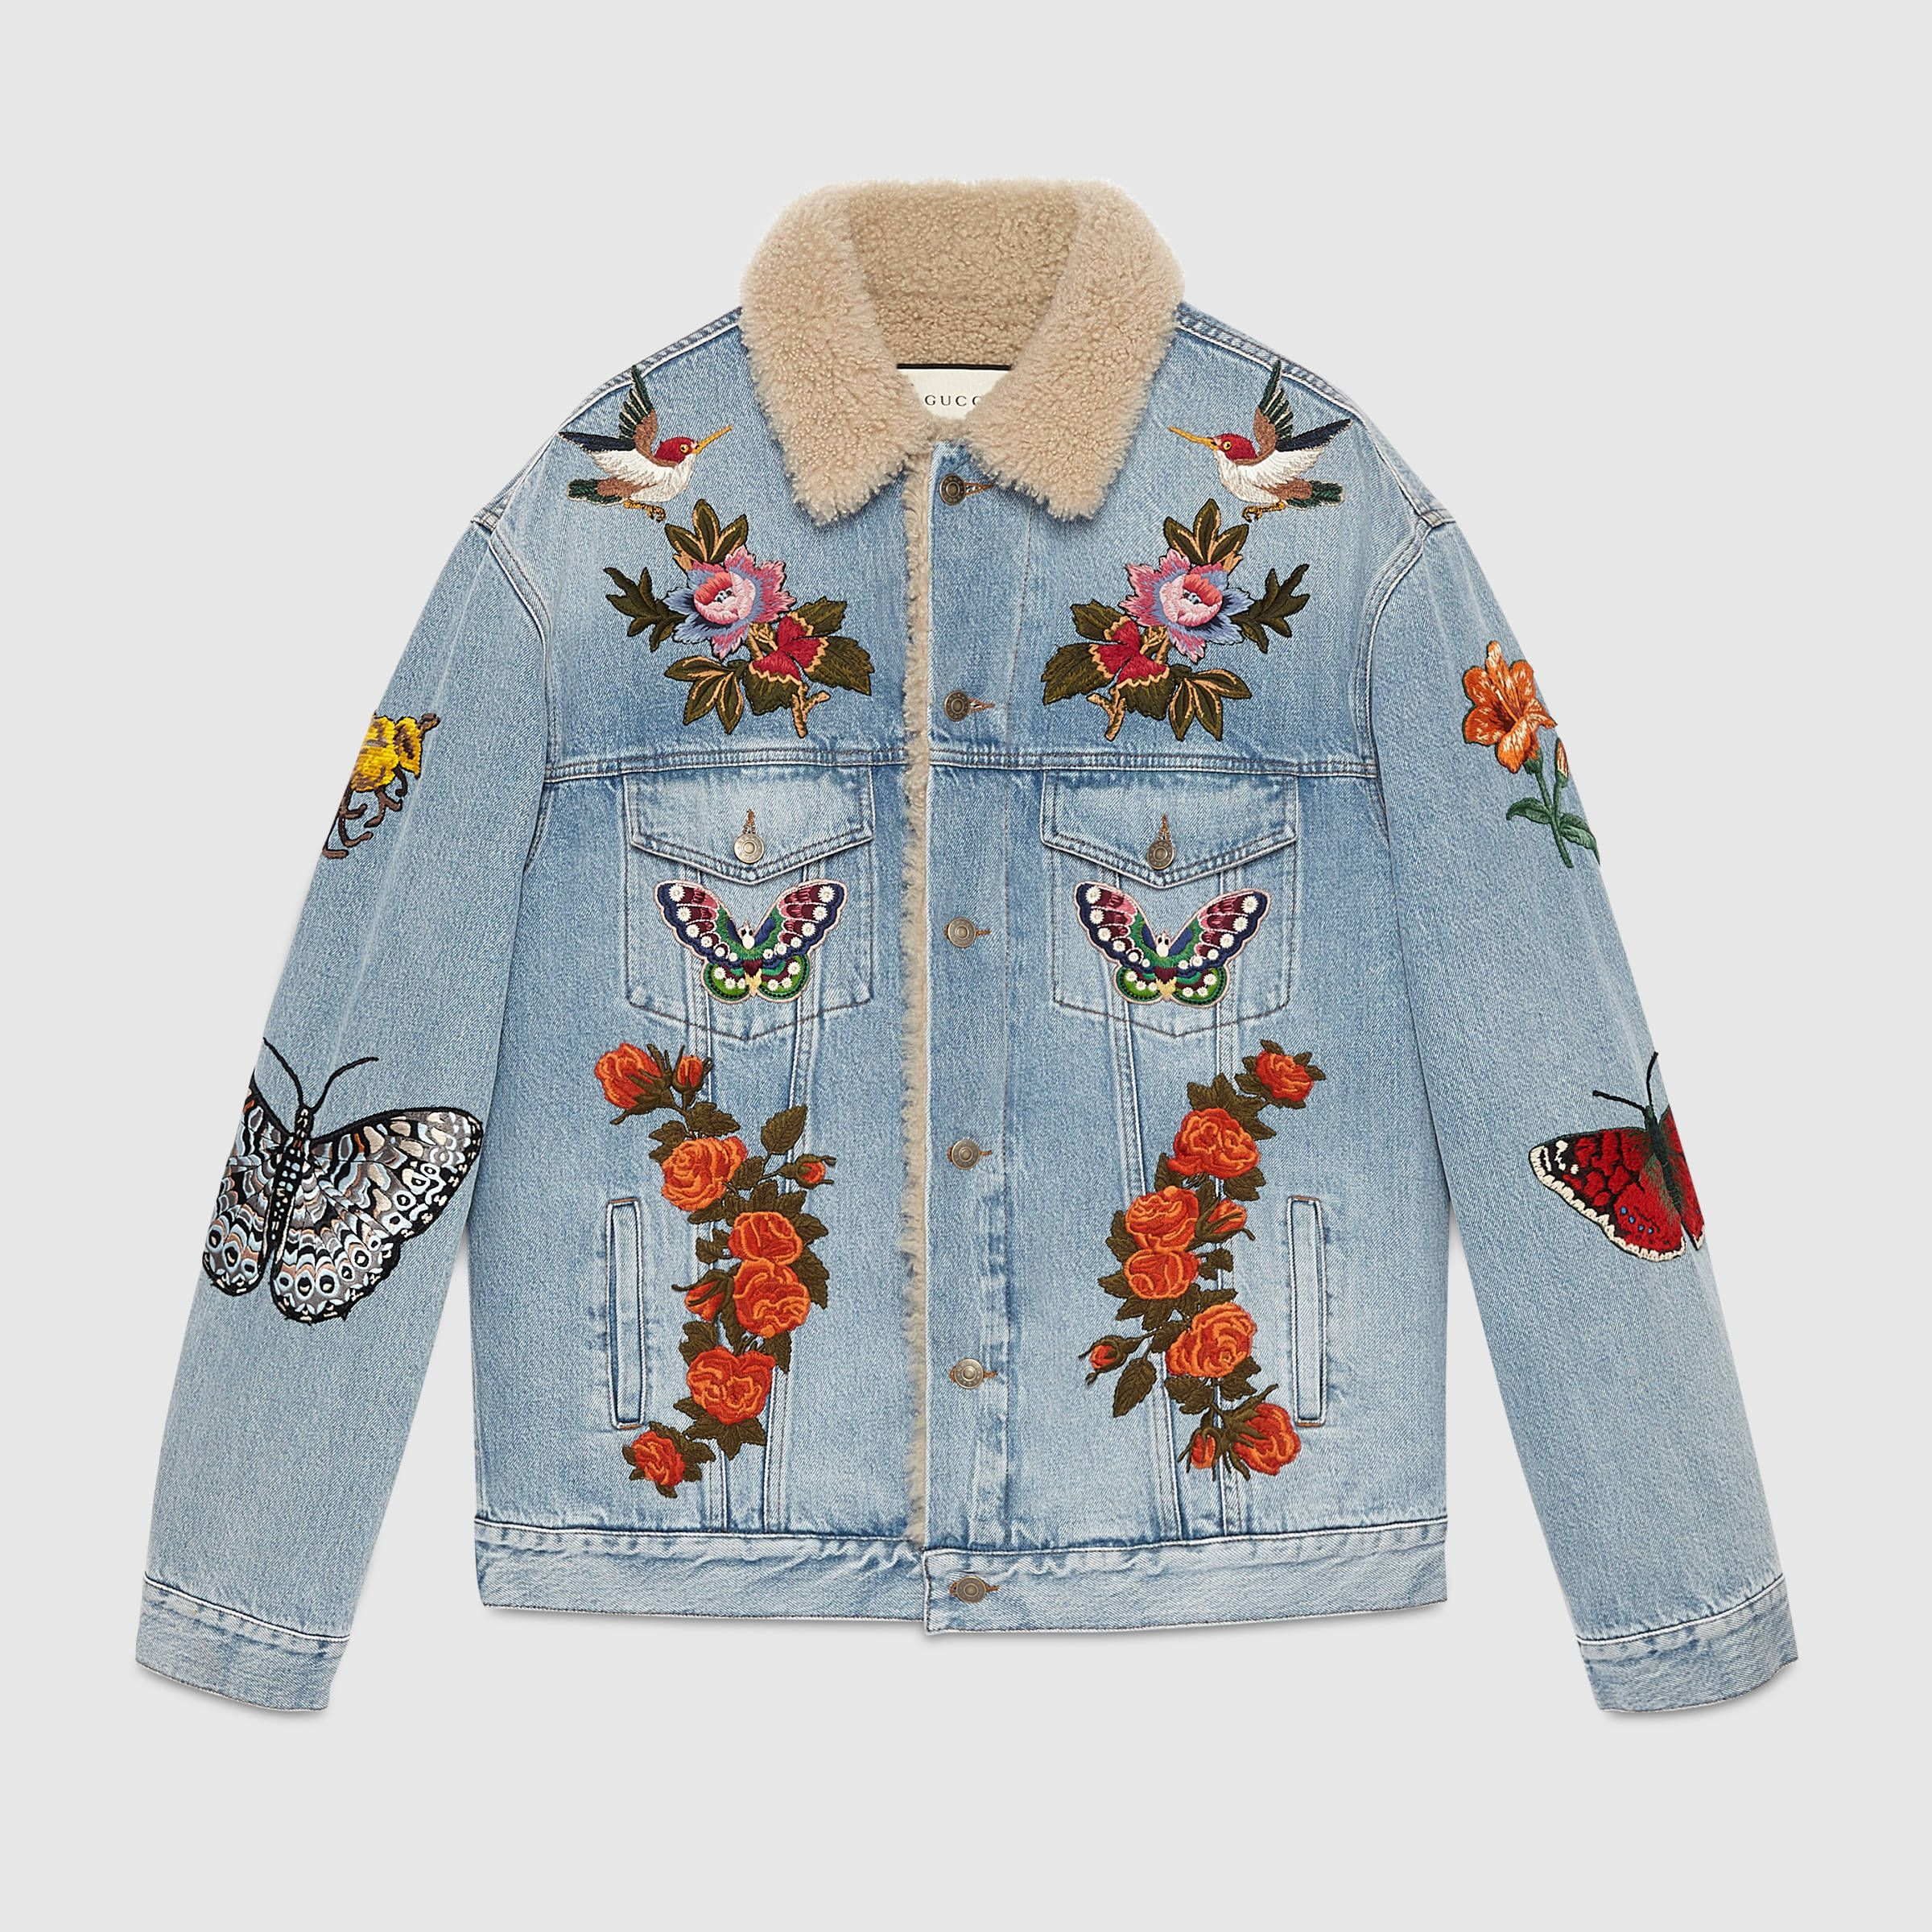 fe170c96e Veste en jean avec broderies in 2019 | Closet | Gucci denim ...